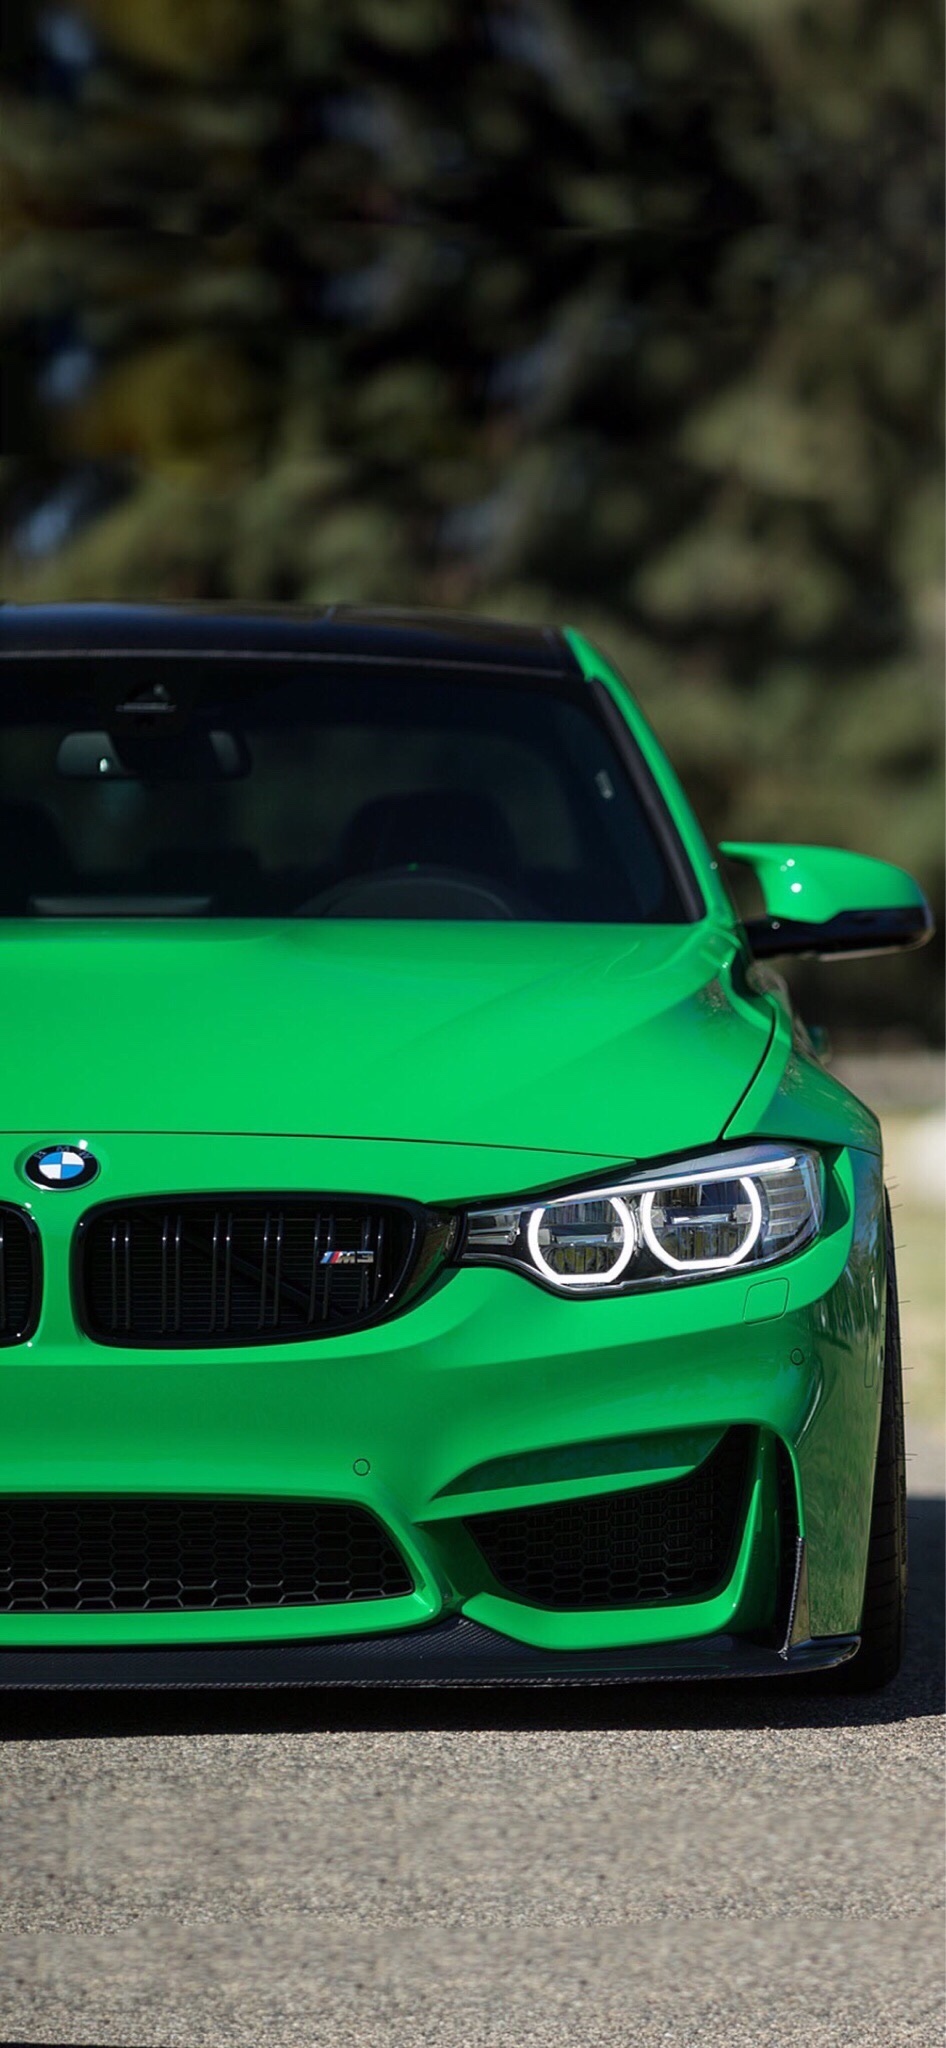 Image Of Bmw Wallpaper Iphone Xs Max 1242x2688 Bmw 5 Series 2 Iphone